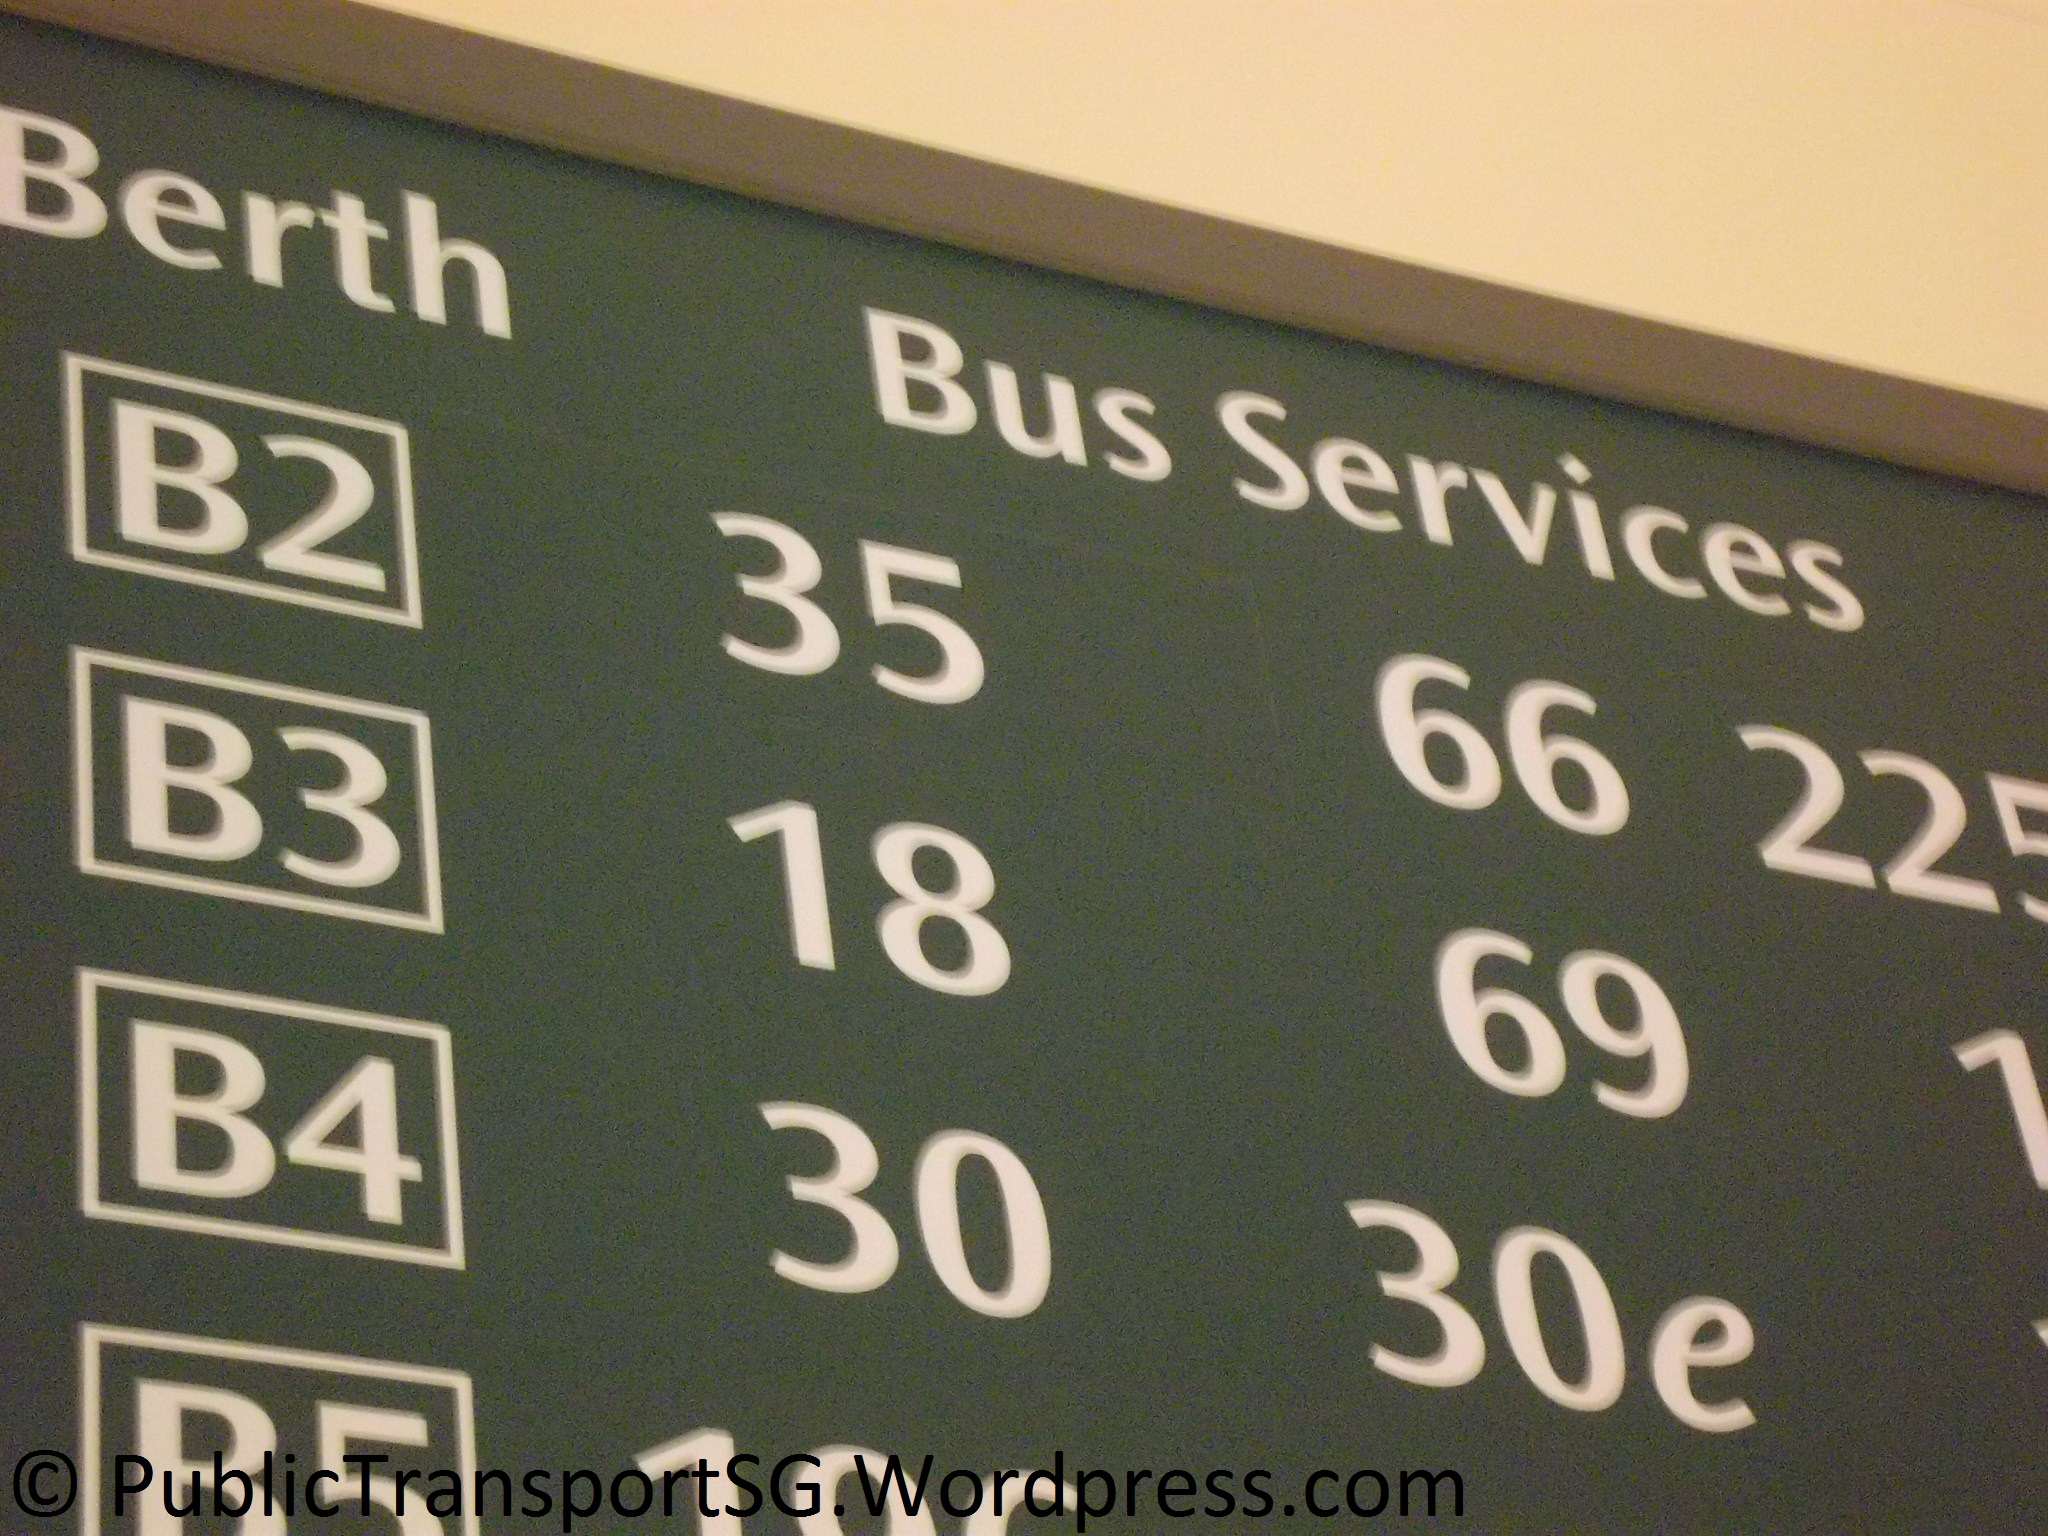 Future new/supplementary BSEP service provision at Bedok Int